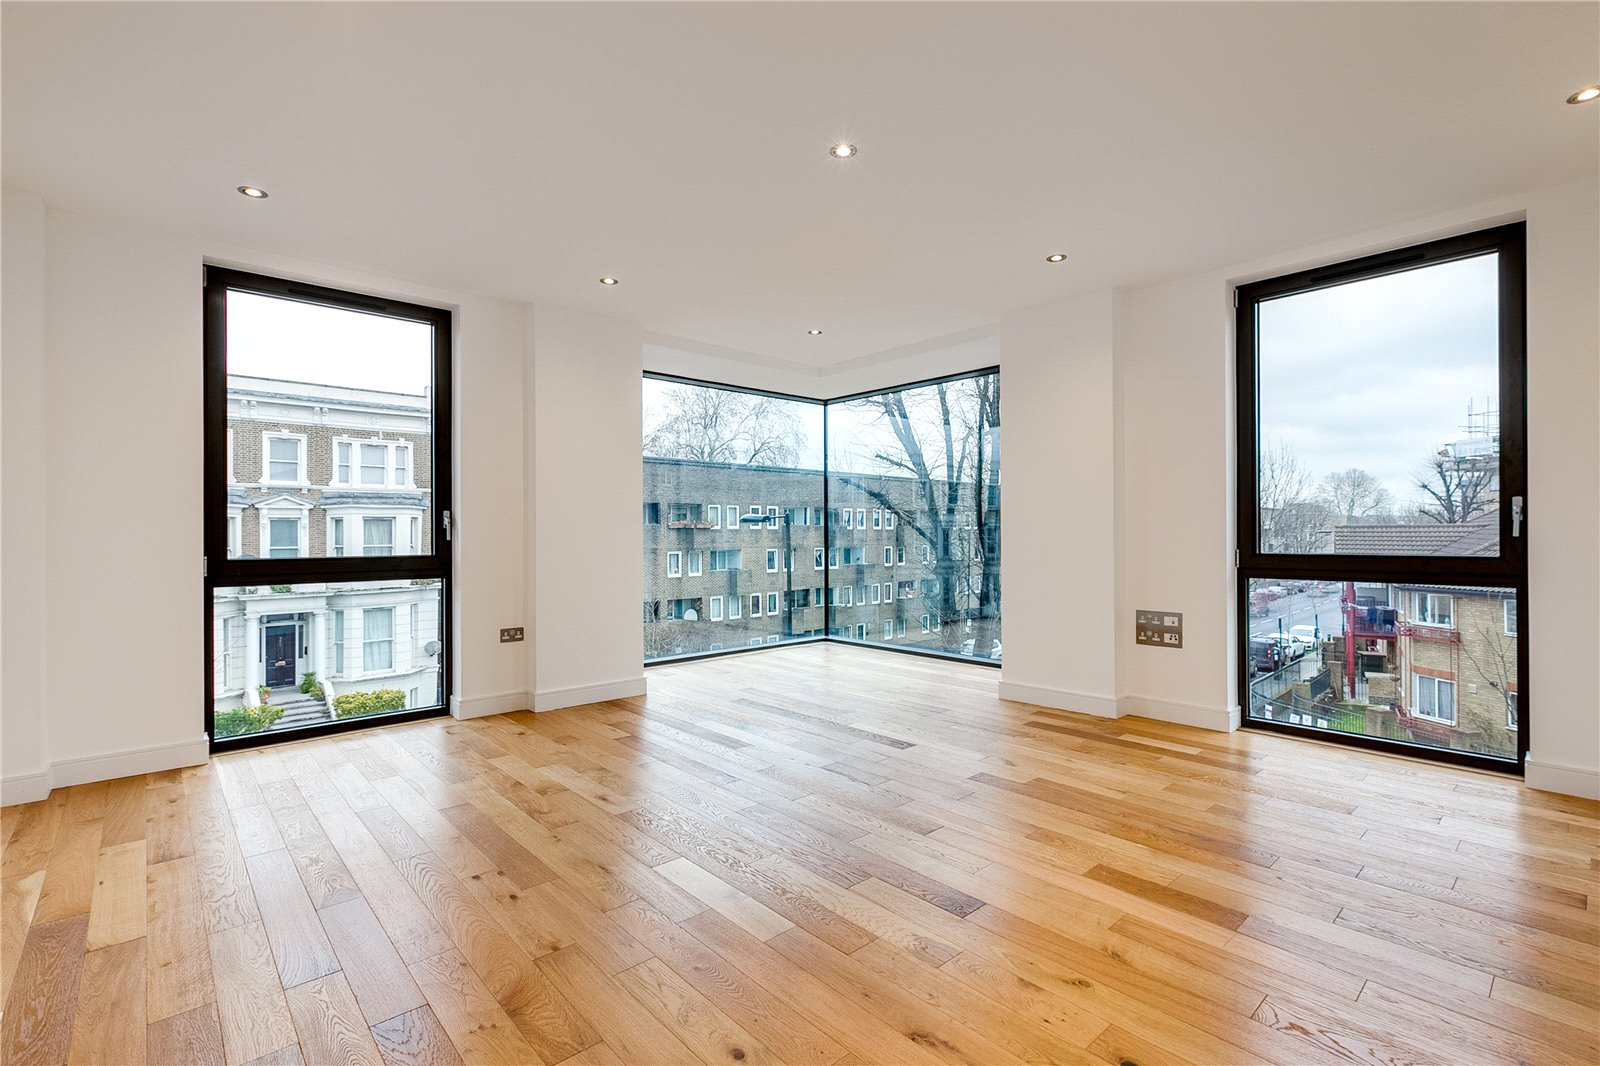 Flat 9, Elgin Avenue W9